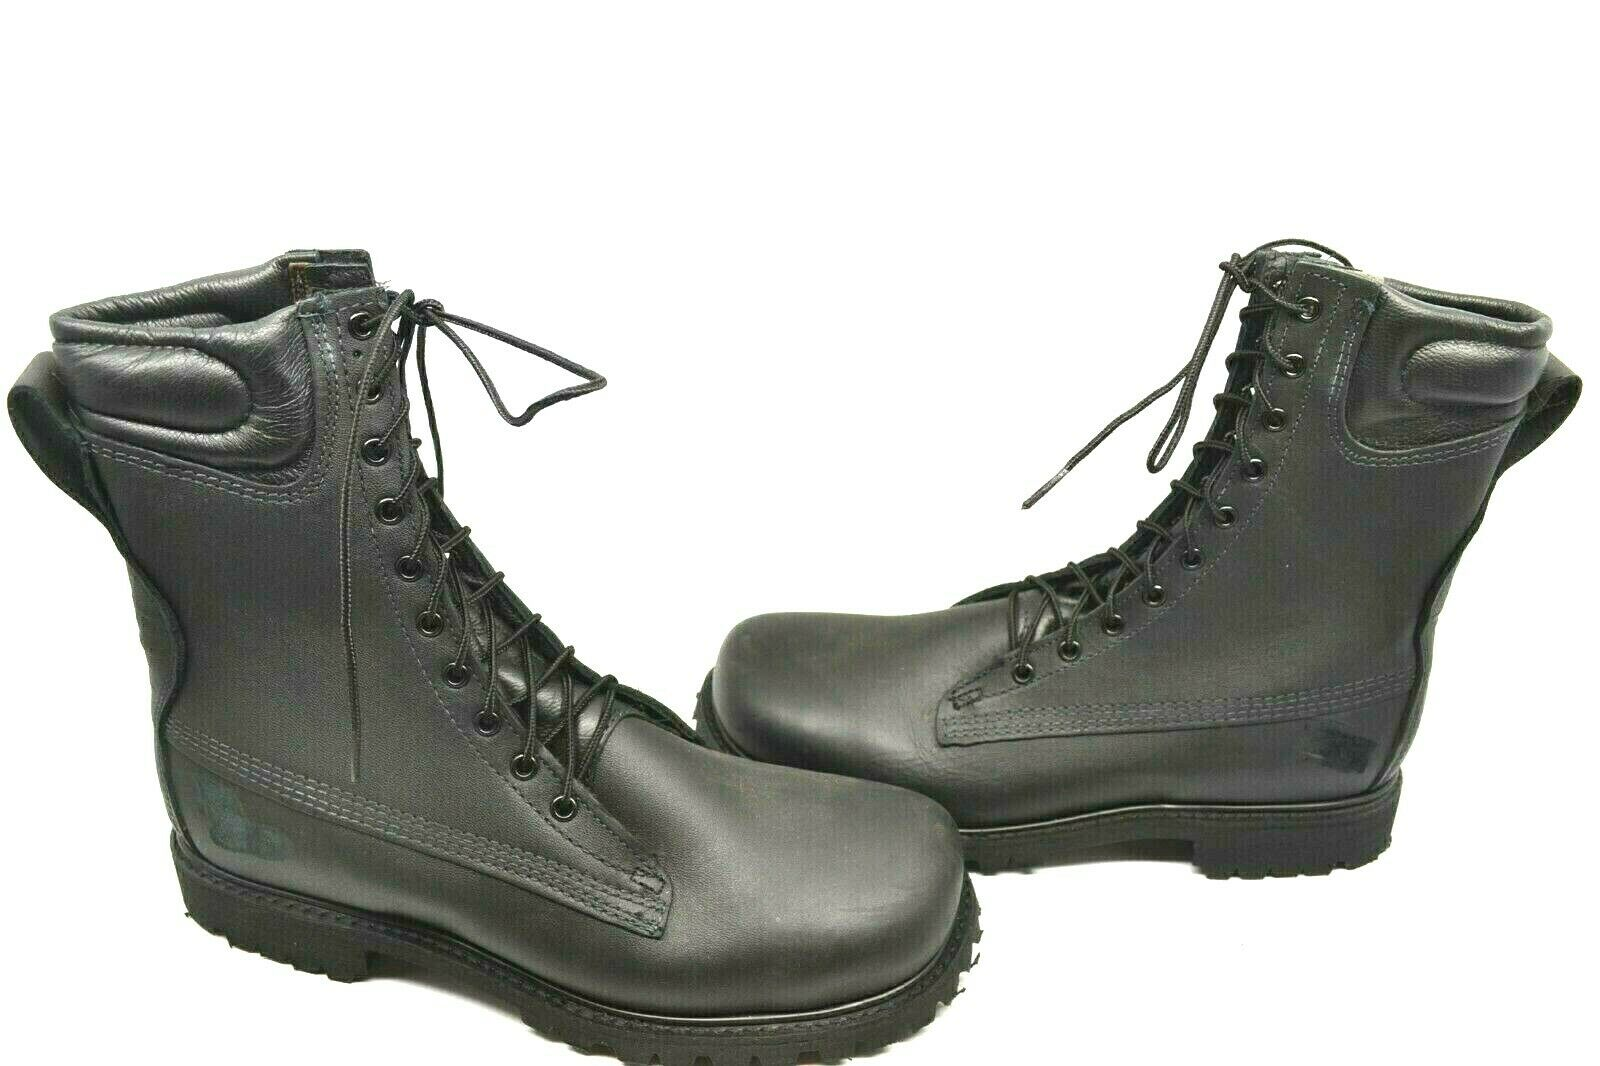 Pro Warrington by Honeywell 3003 Bombero Puntera De Acero 2016 Bota De Cuero 9.5 D